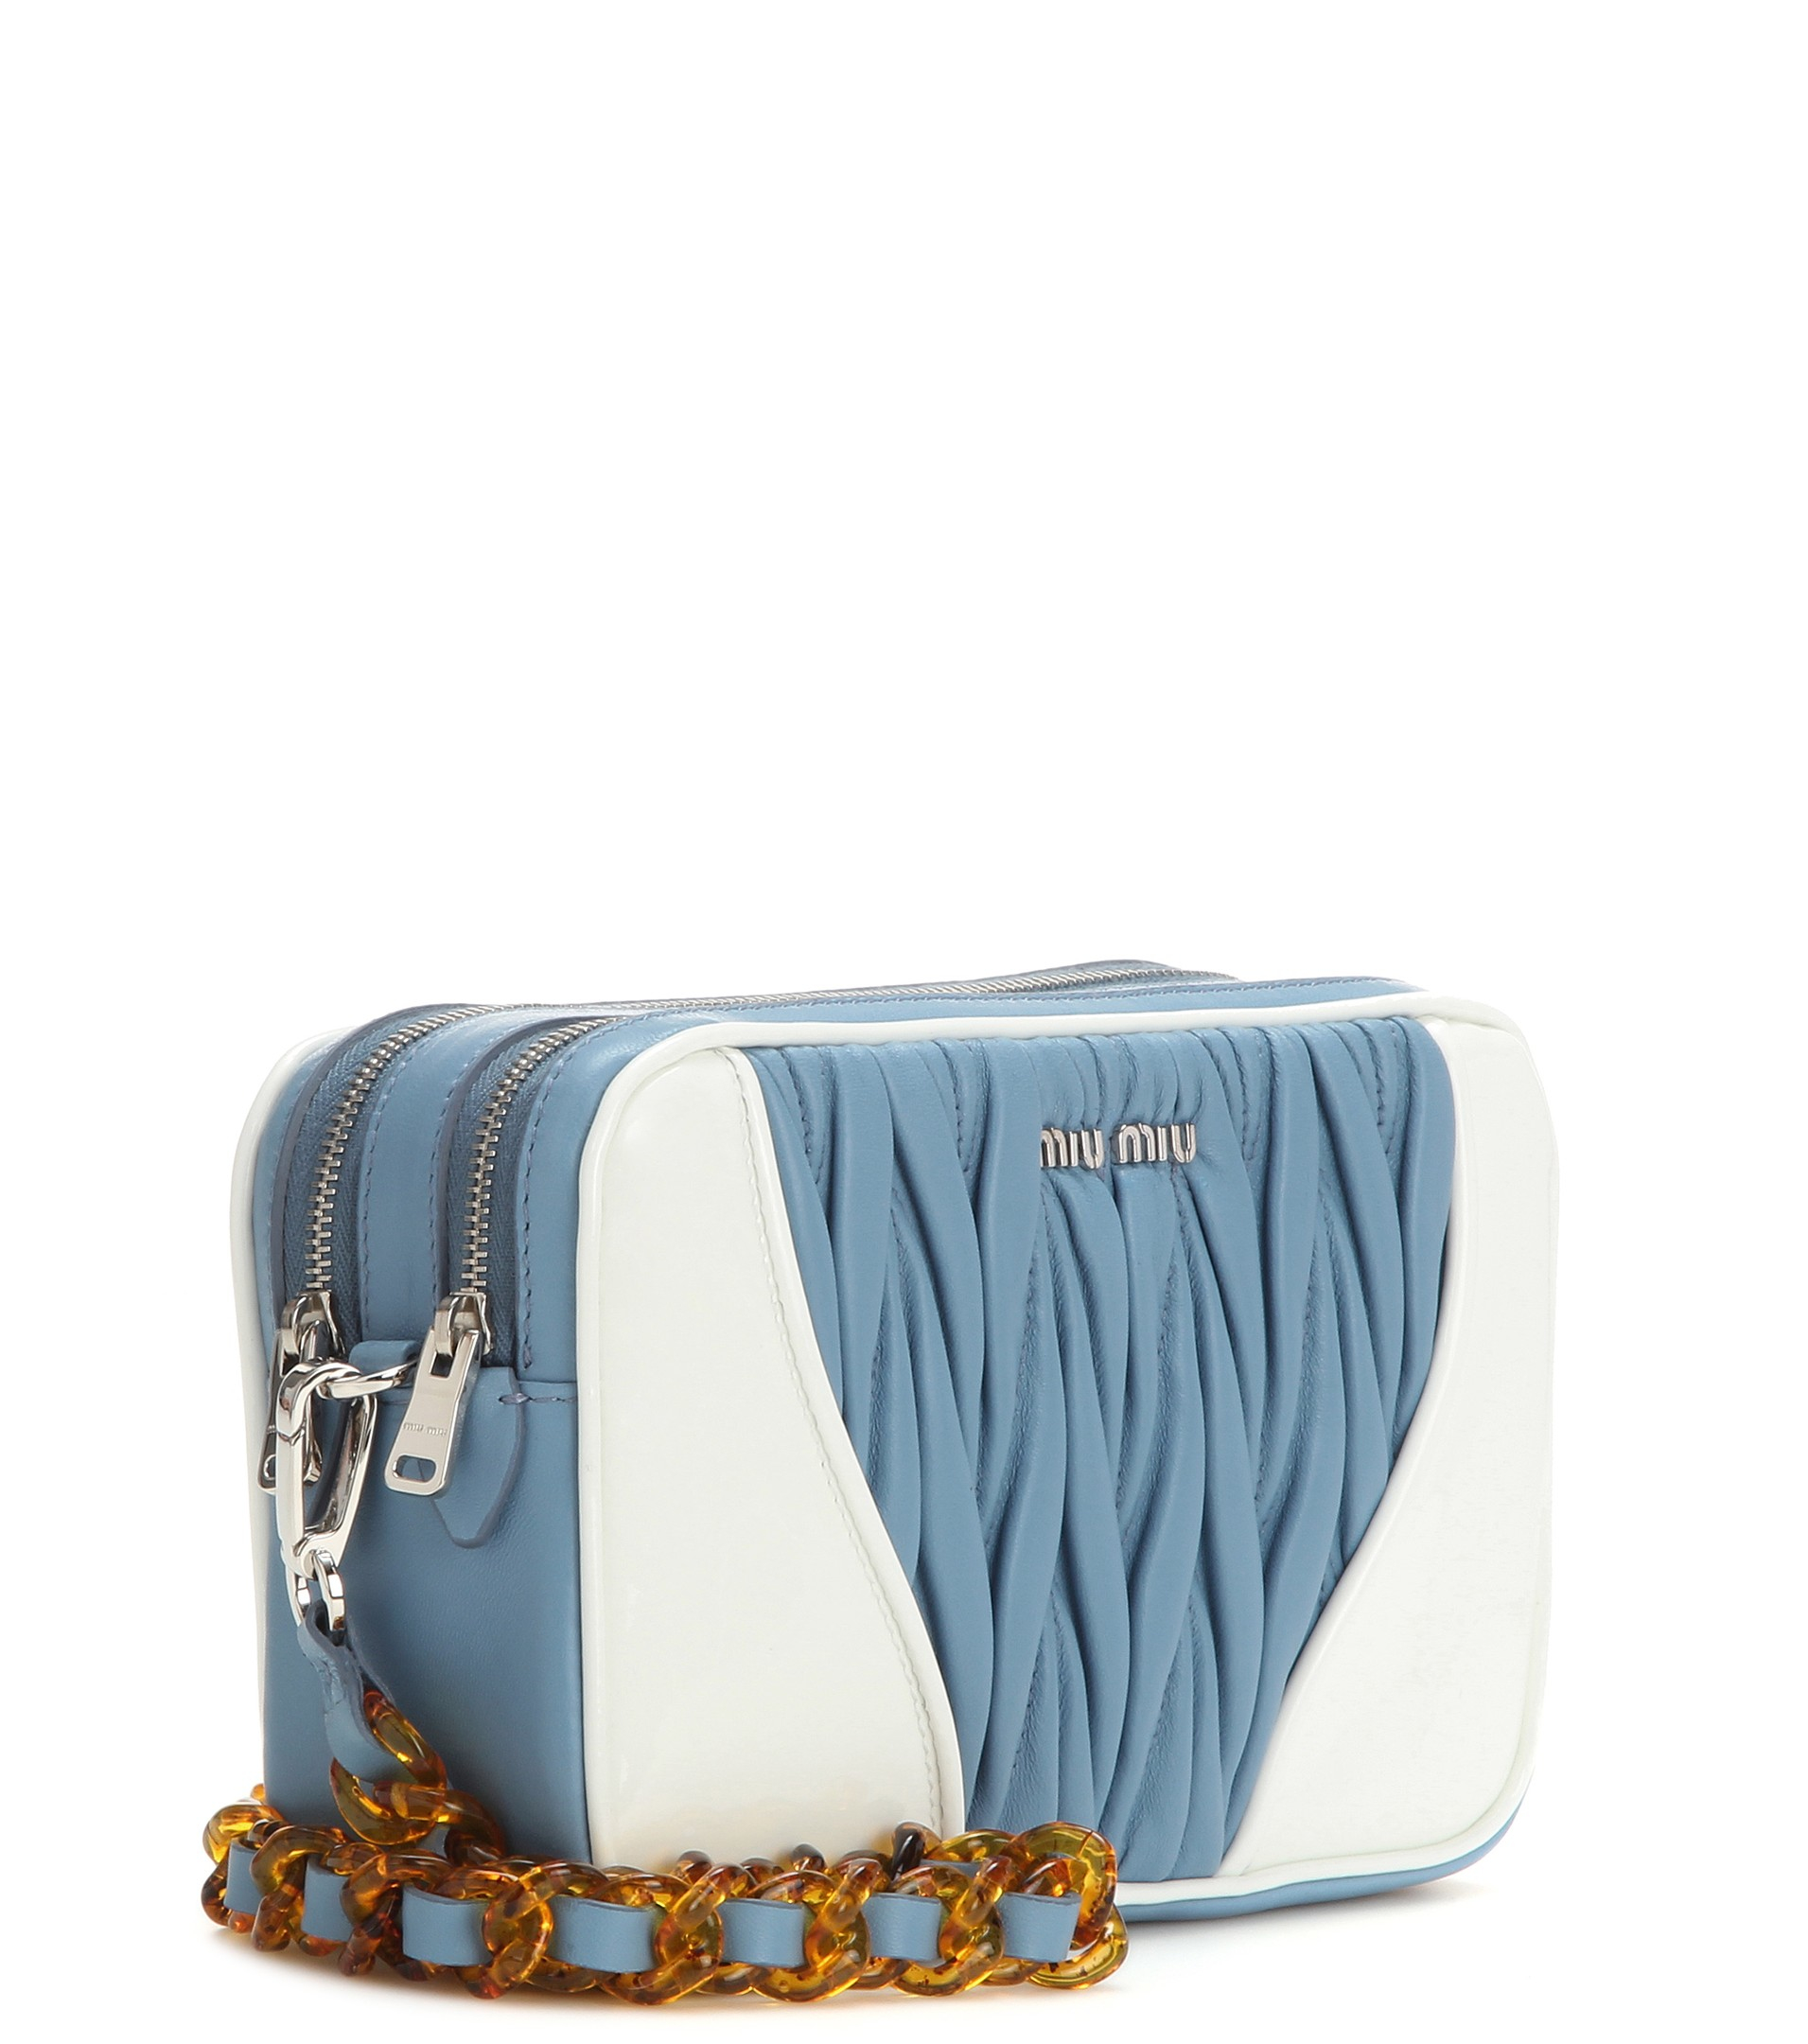 d5471f07b8b Lyst - Miu Miu Matelassé Leather Shoulder Bag in Blue